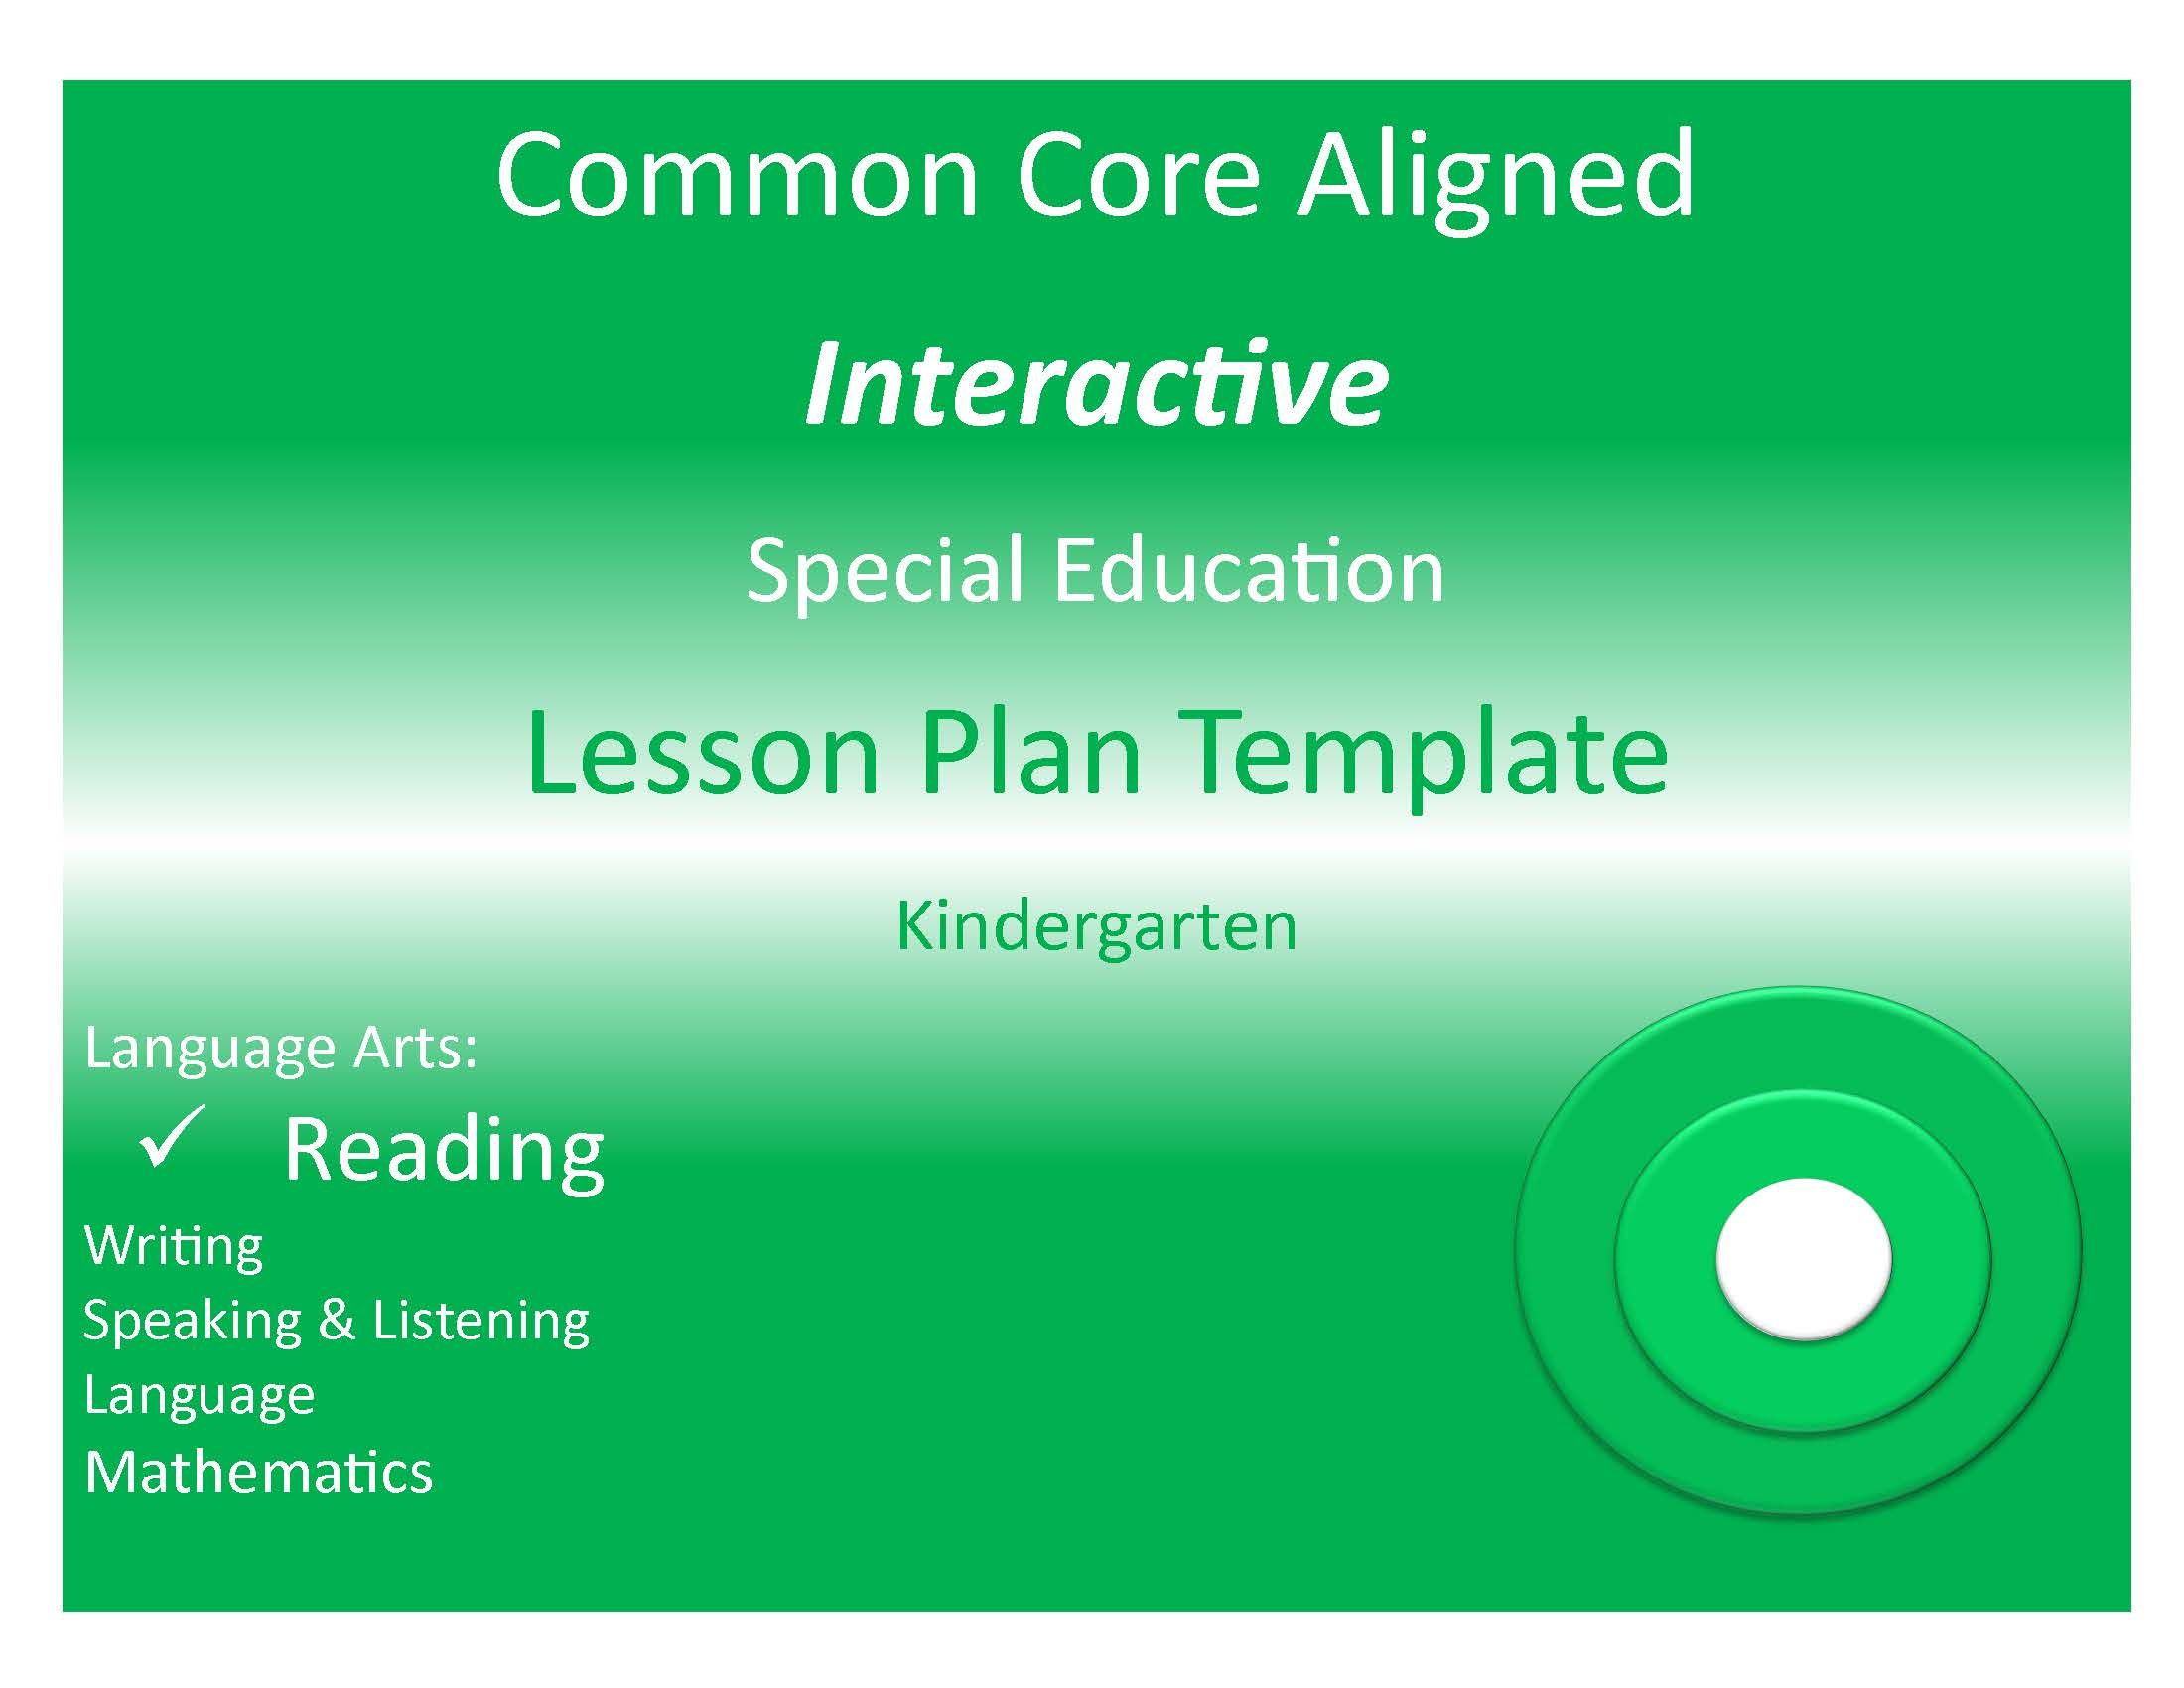 Common Core State Standards Aligned Interactive Special